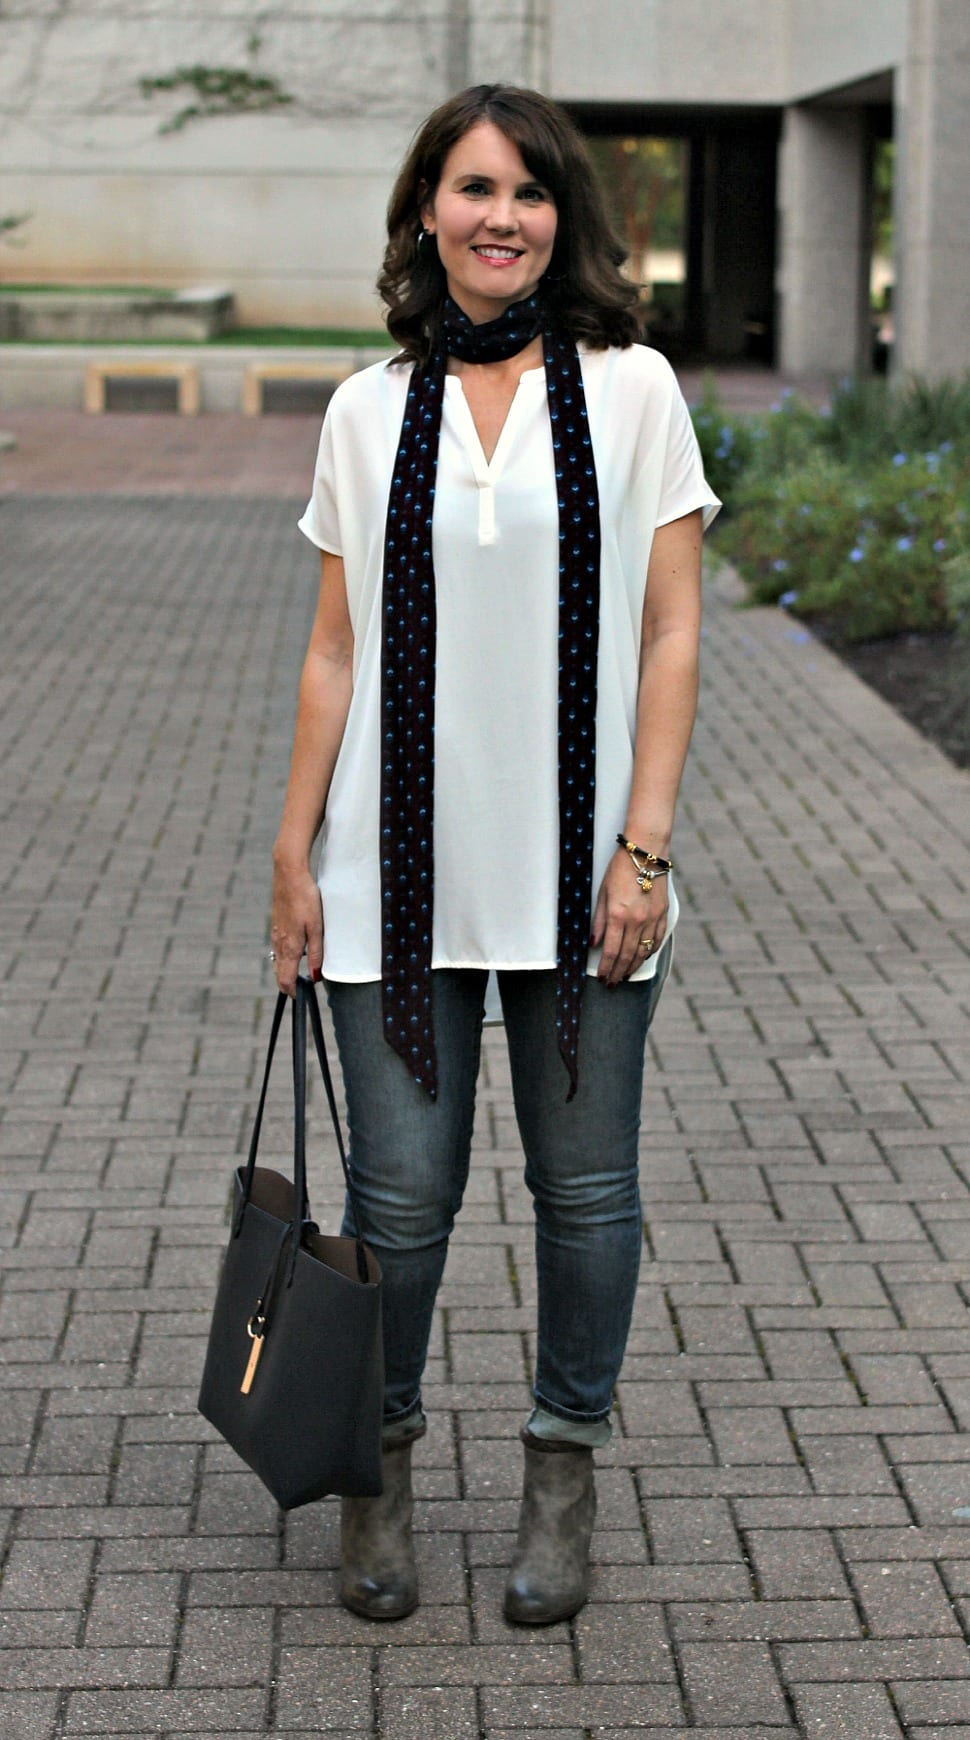 ac1094bdf999 Fall Outfit idea  Pair a skinny scarf with a tunic